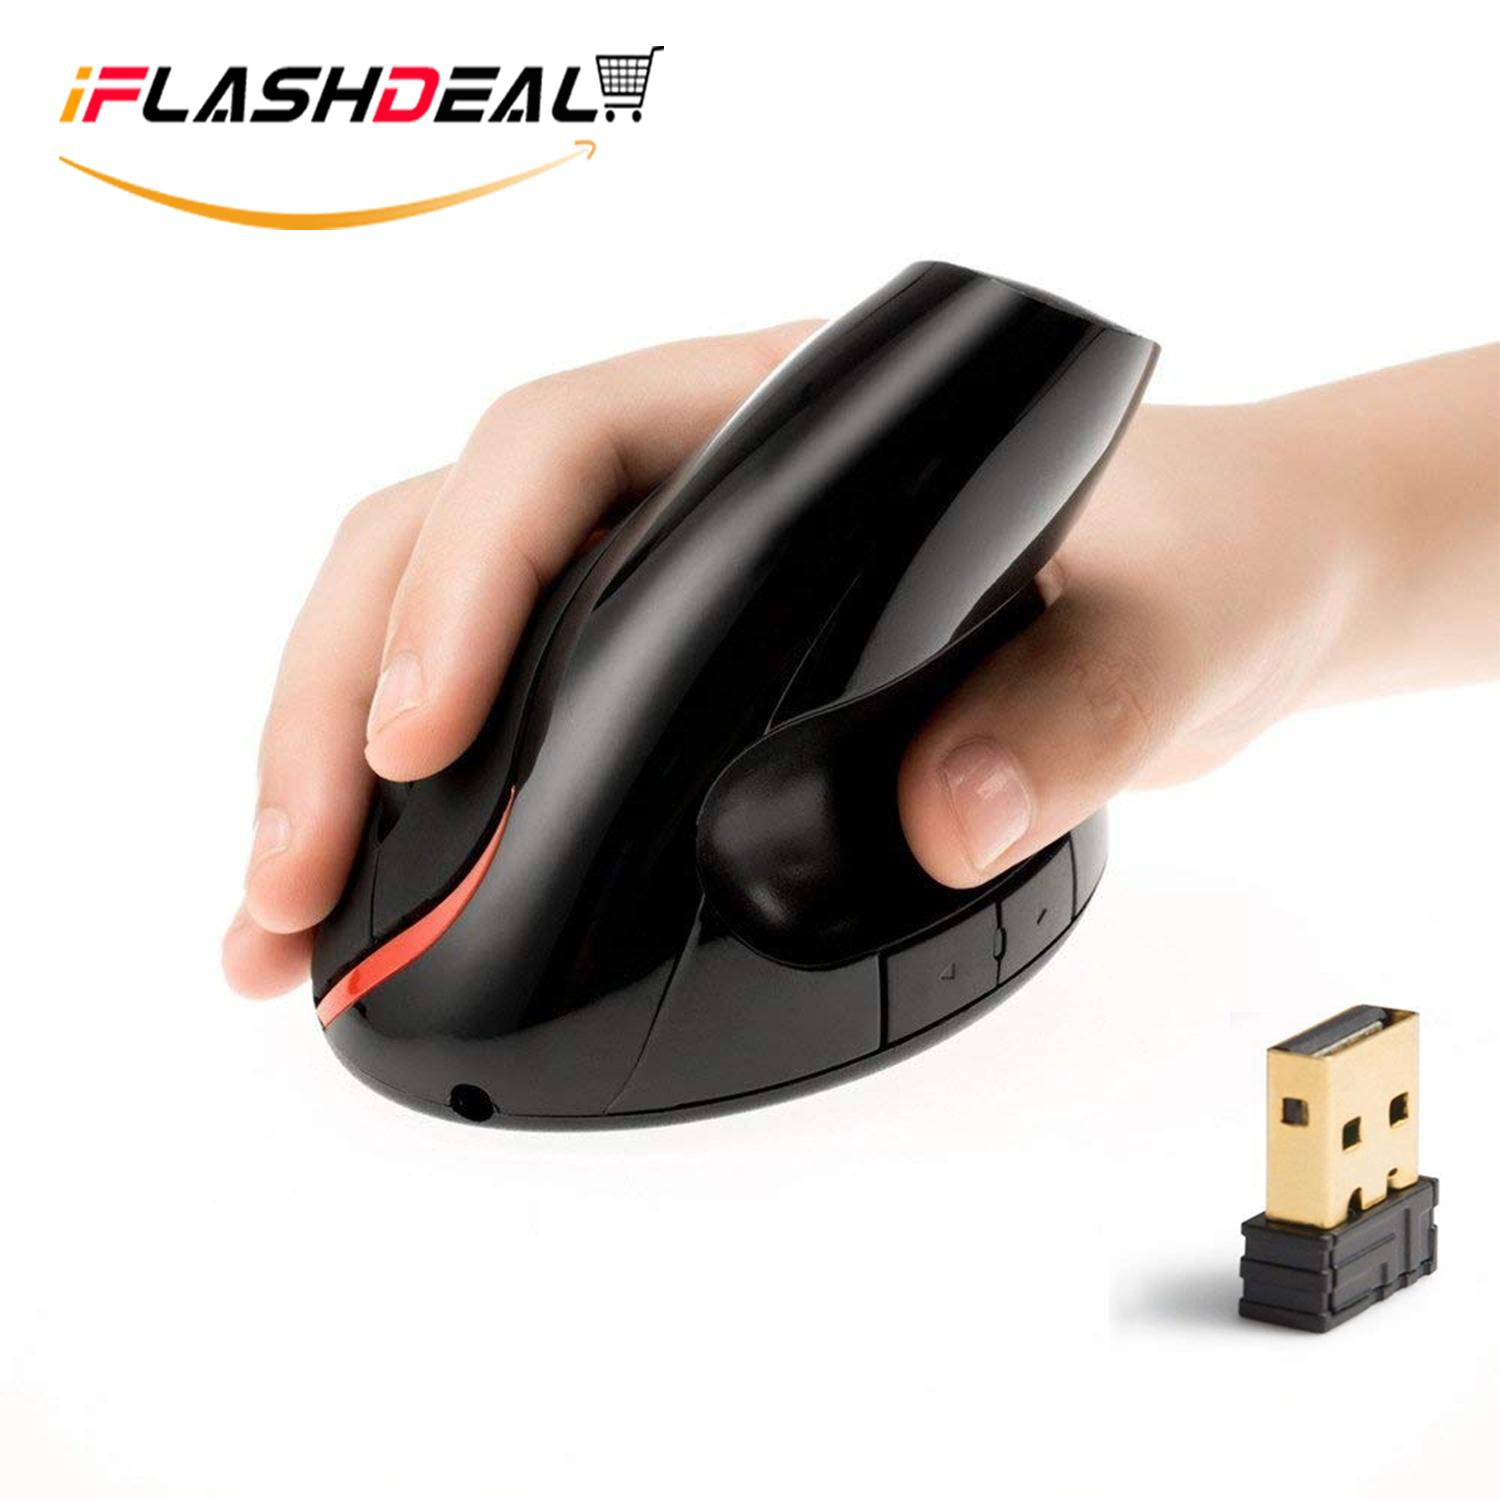 iFlashDeal Wireless Vertical Mouse Ergonomic Gaming Mice with Thumb Groove High Accuracy and Zero Latency Reduces Hand Wrist Pain  for PC Computer Laptop Tablet